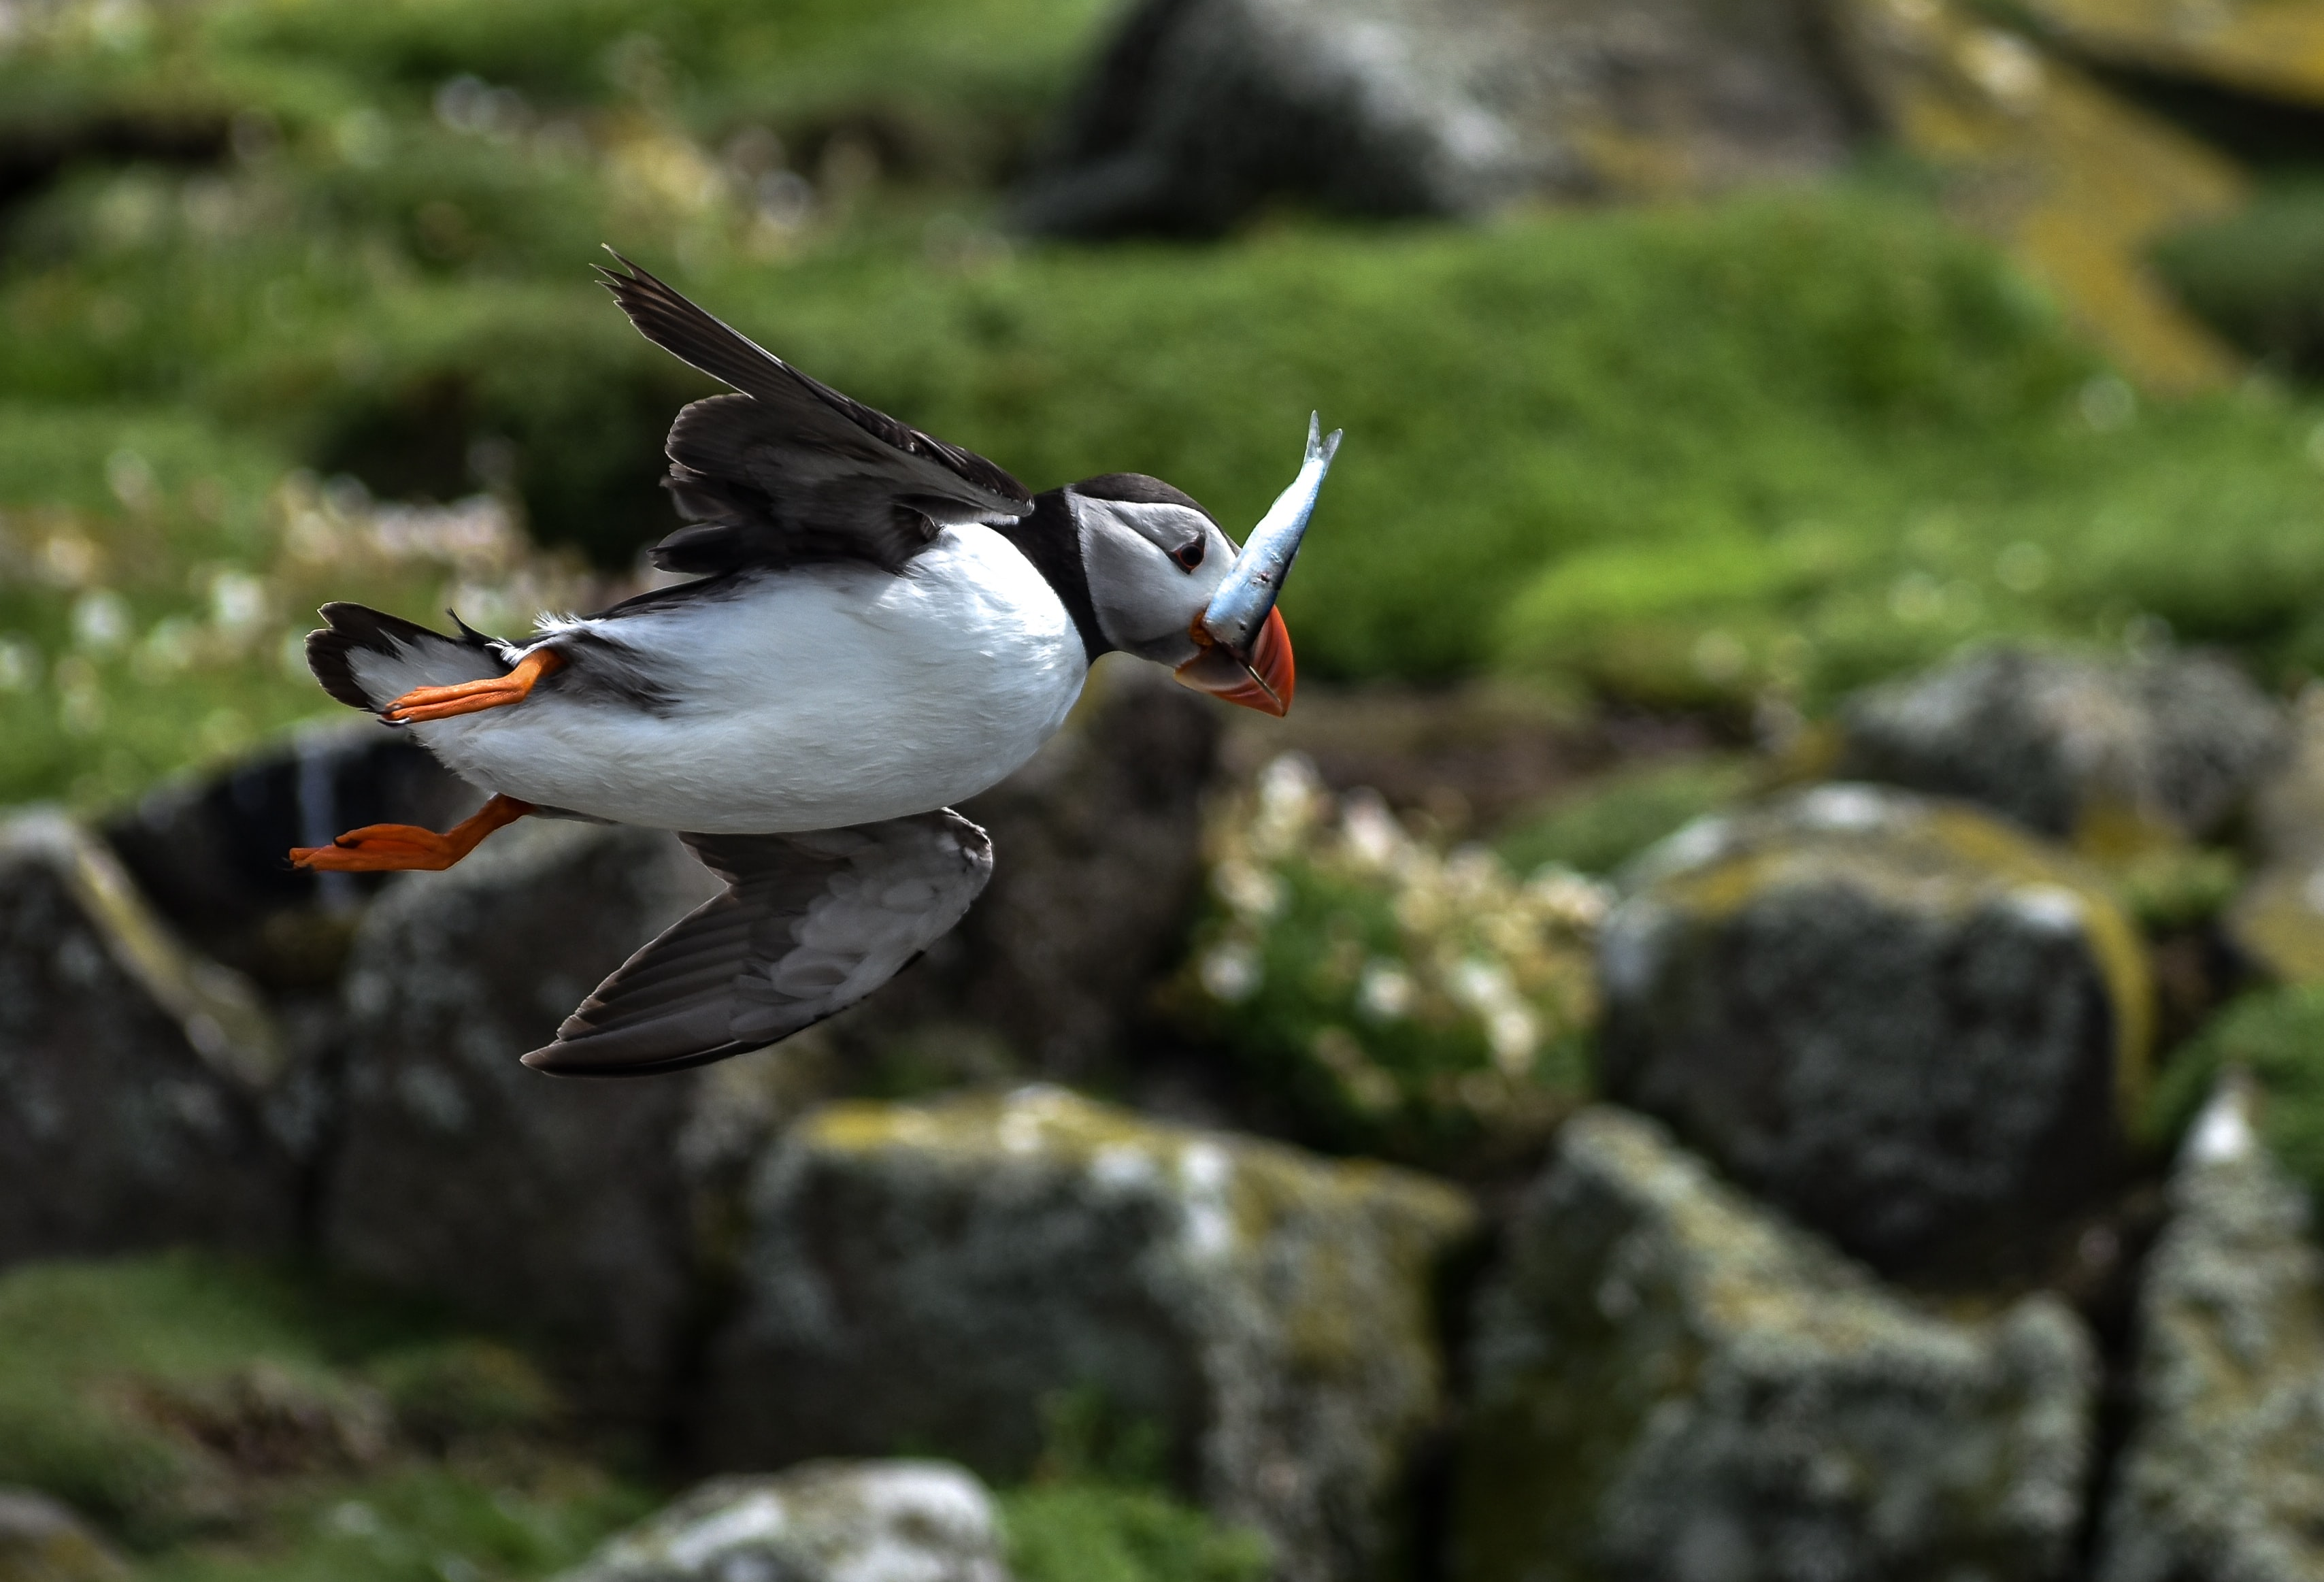 photo of flying puffin bird catching fish